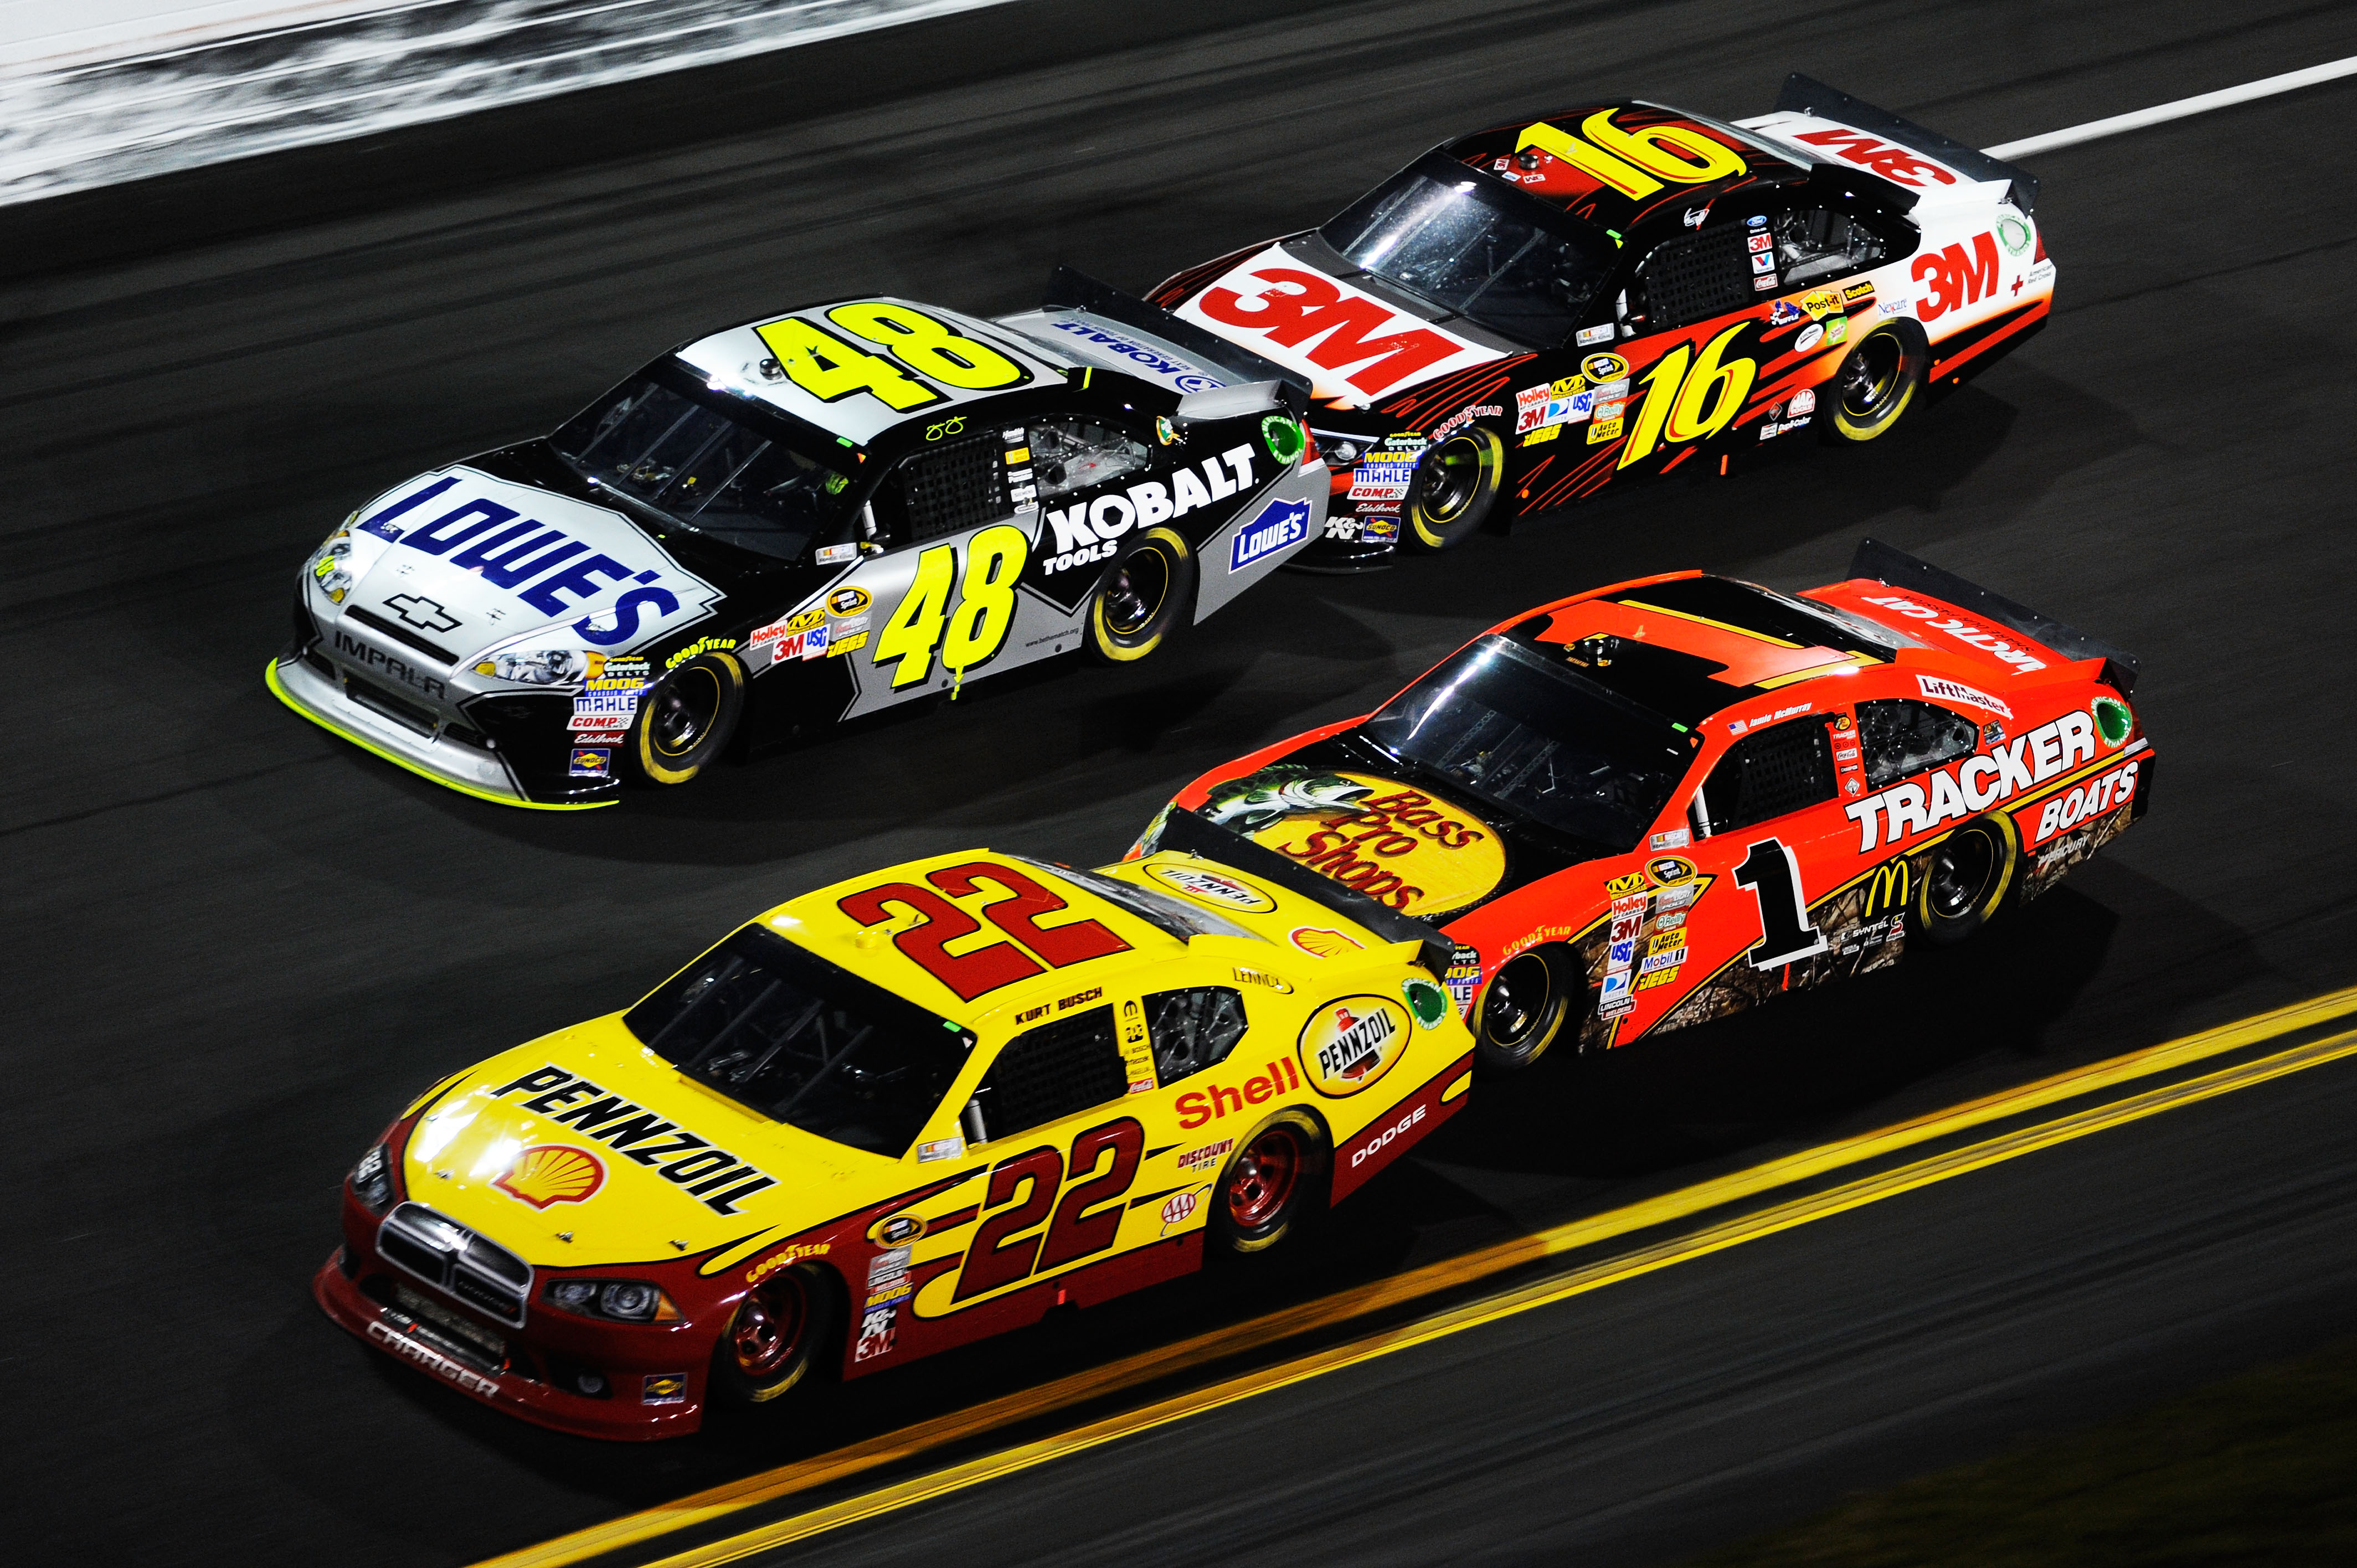 Greg Biffle looked comfortable in the two car breakaways.